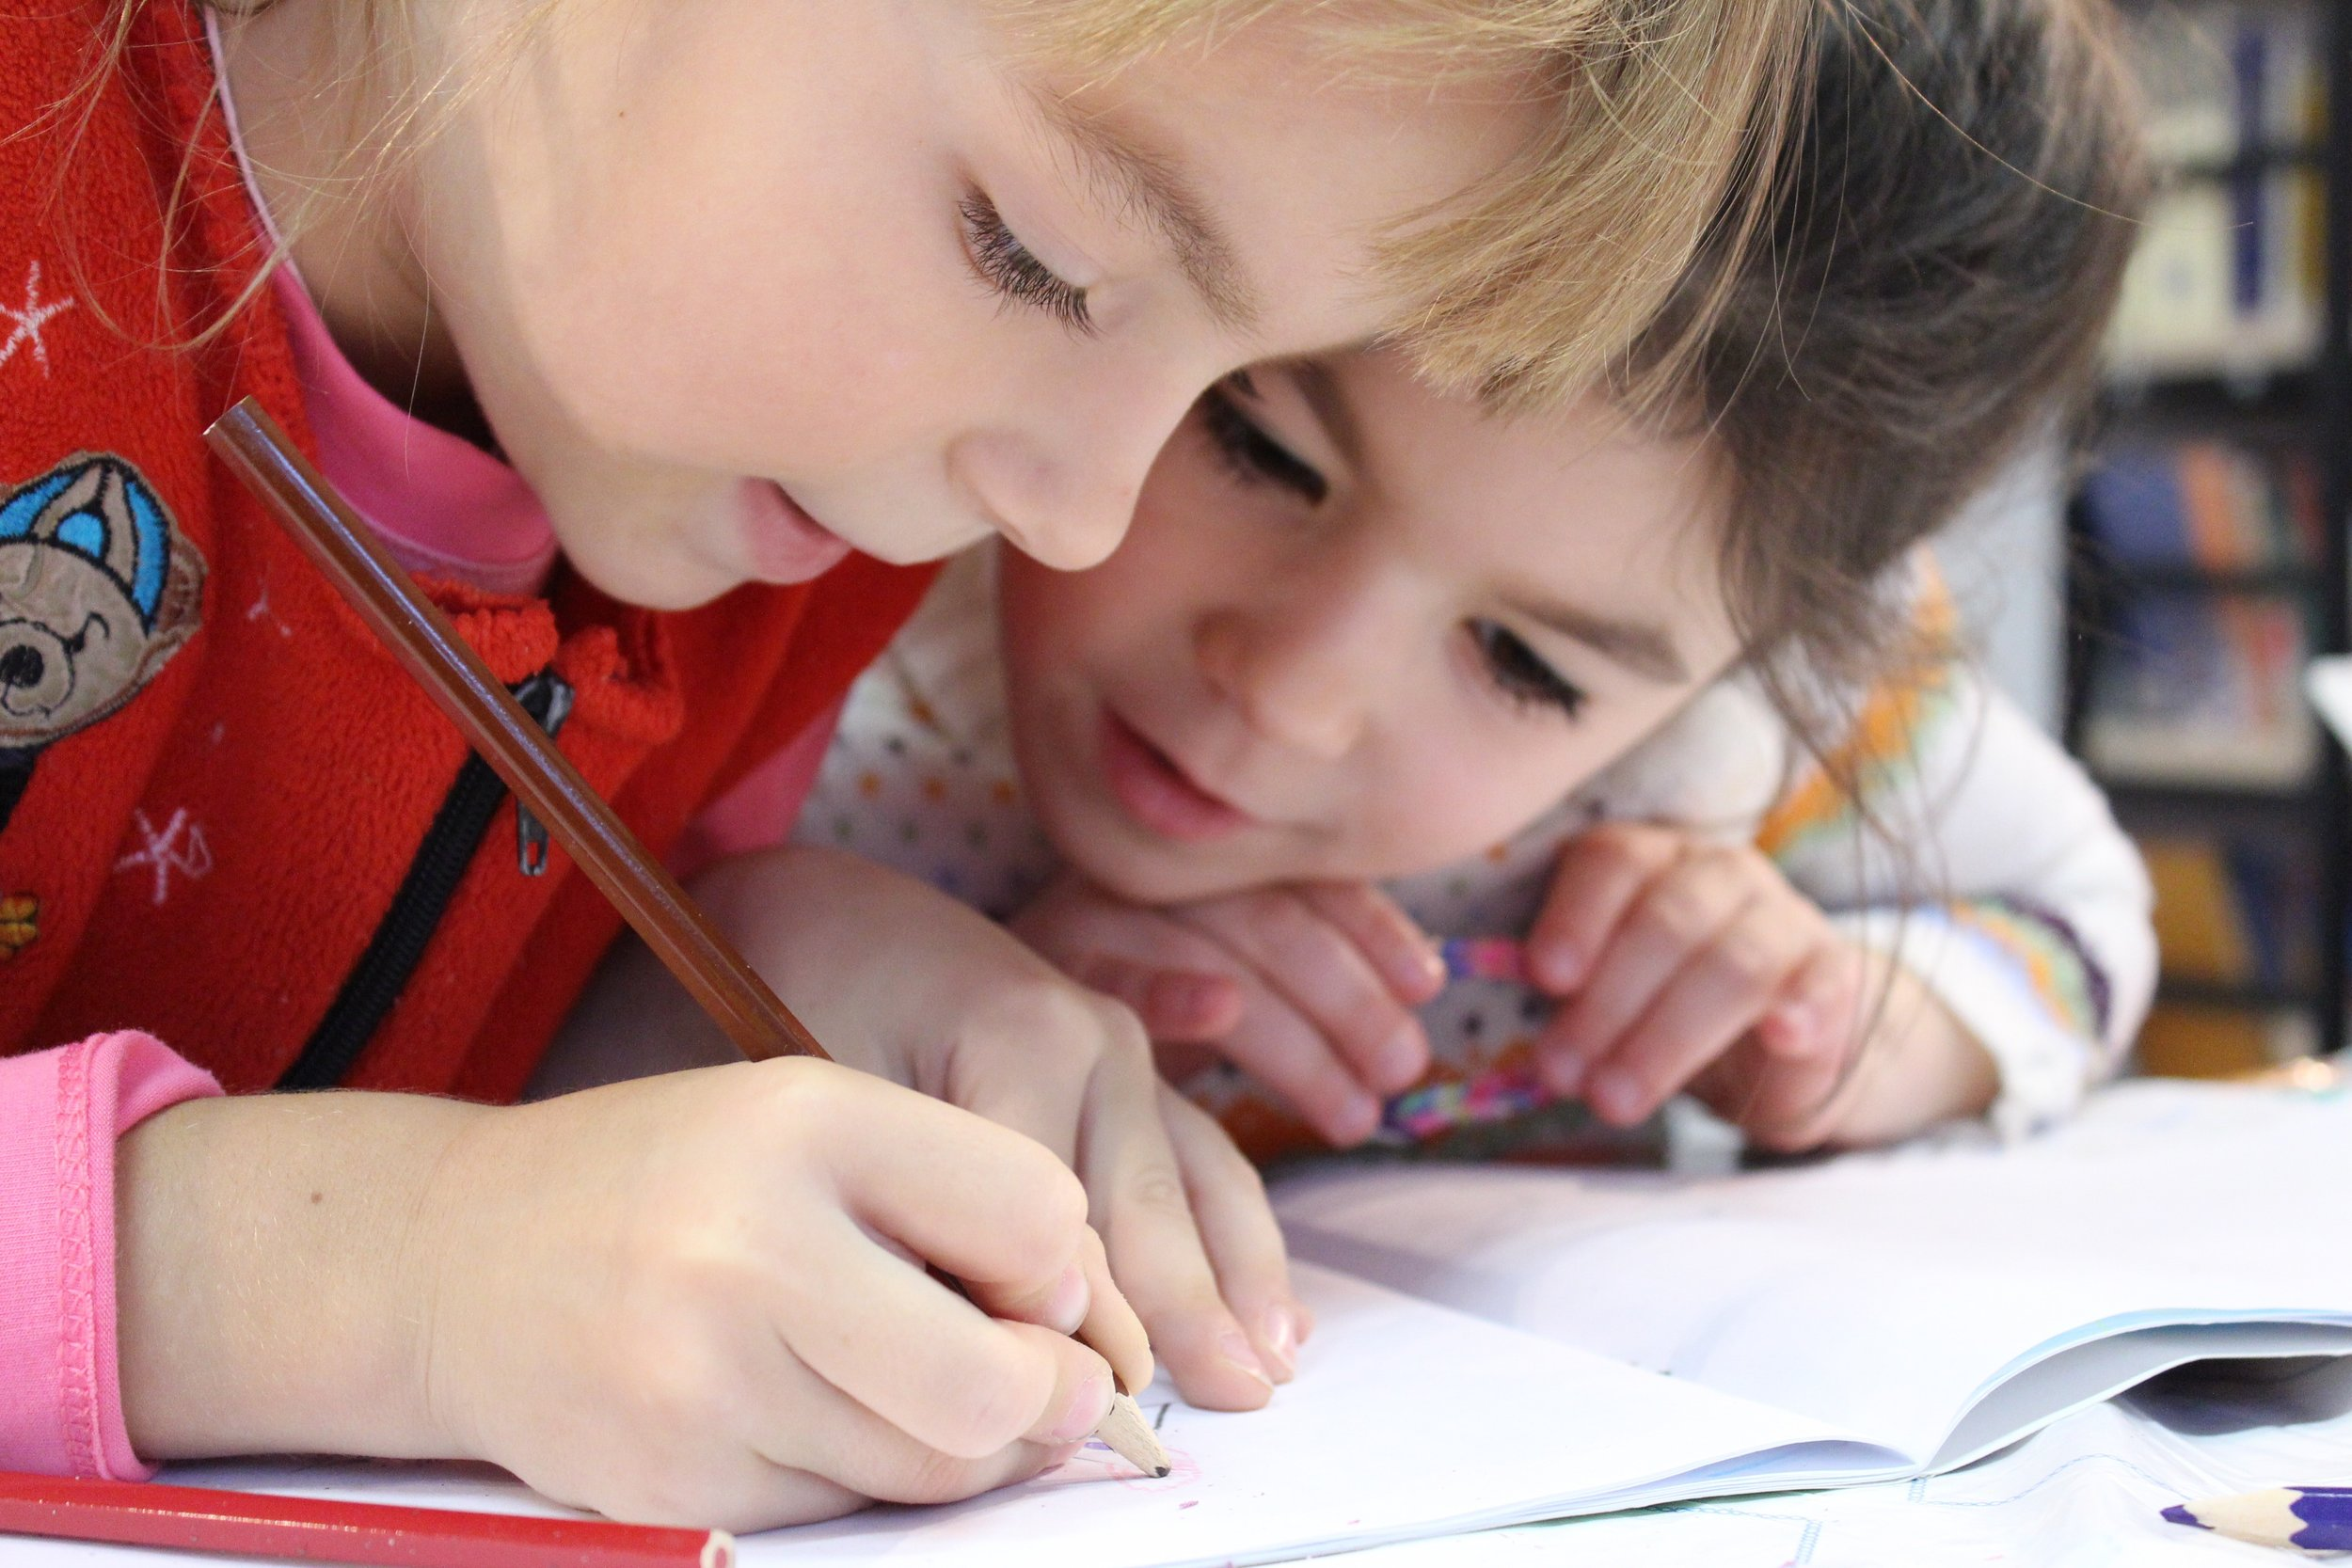 Two girls hovering over a notebook and writing together